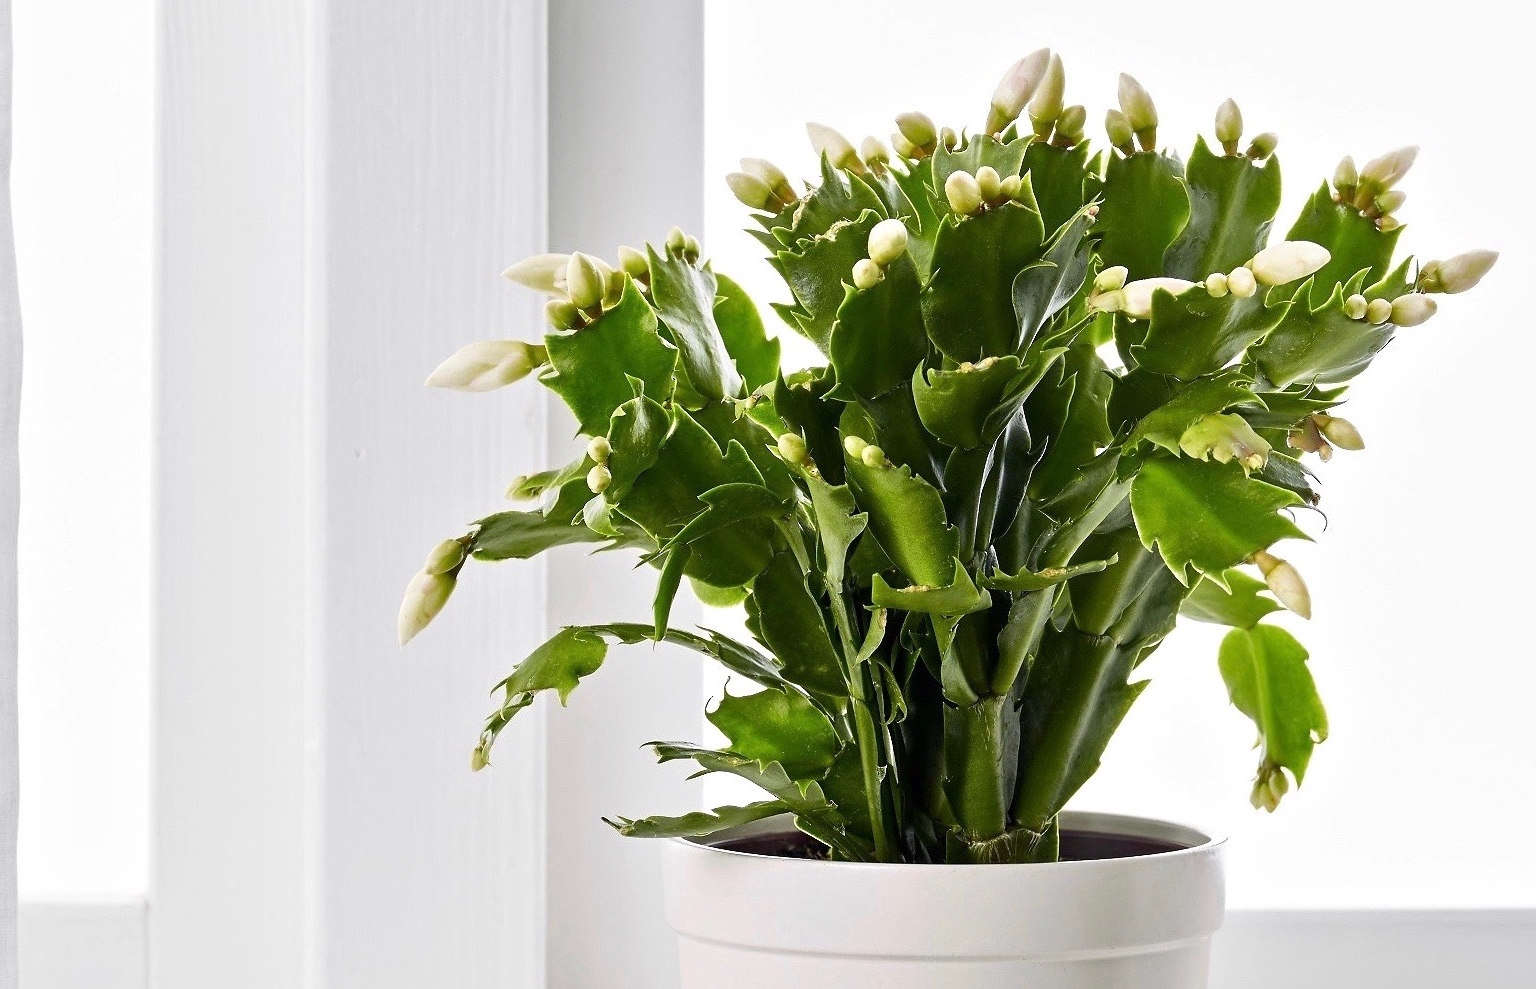 When Do Christmas Cactus Bloom.Christmas Cactus A Houseplant That Will Change Your Life